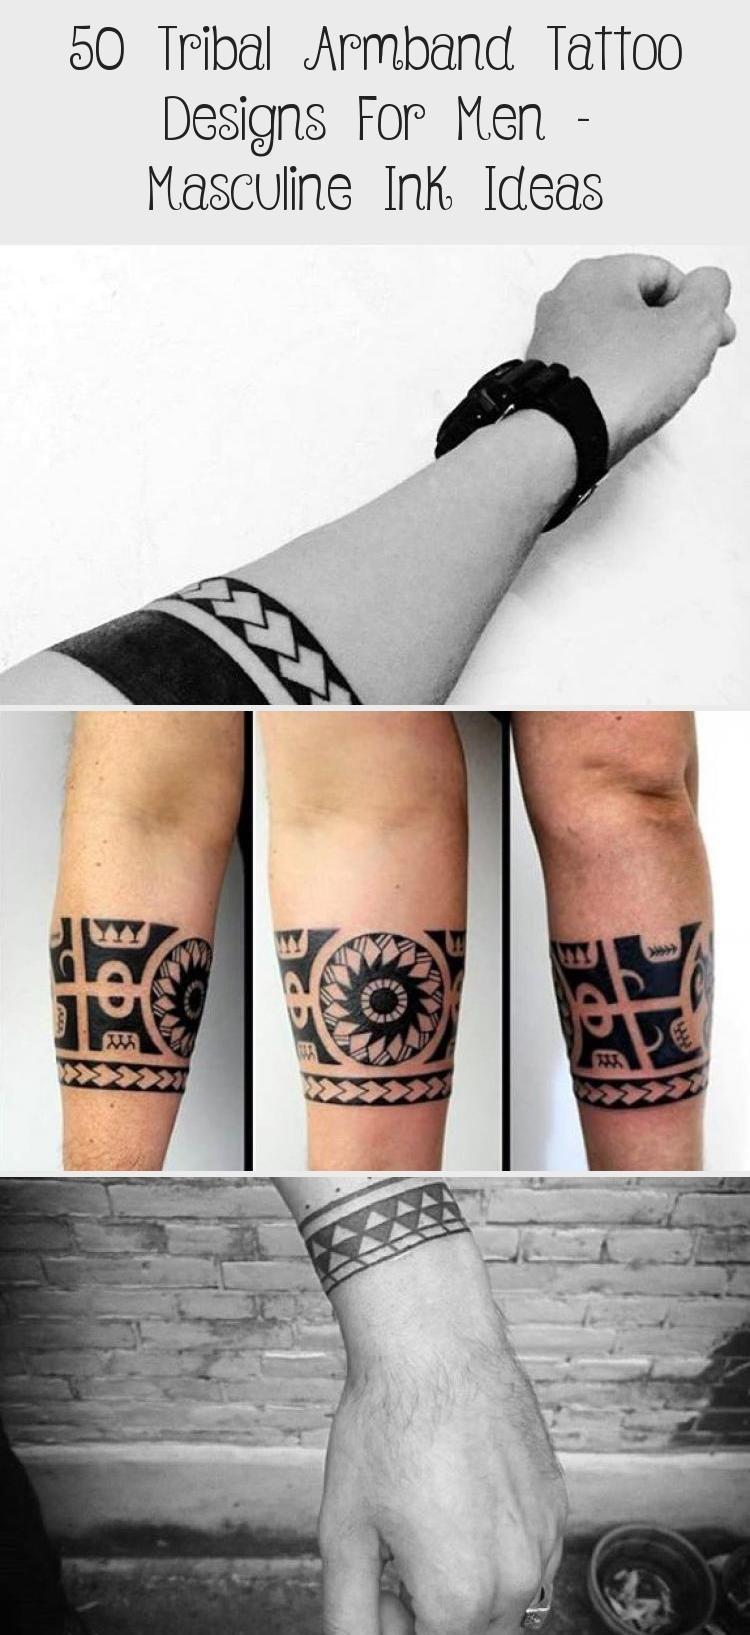 50 Tribal Armband Tattoo Designs For Men Masculine Ink Ideas Tattoos And Body Art In 2020 Tribal Armband Tattoo Hand Tattoos Simple Hand Tattoos